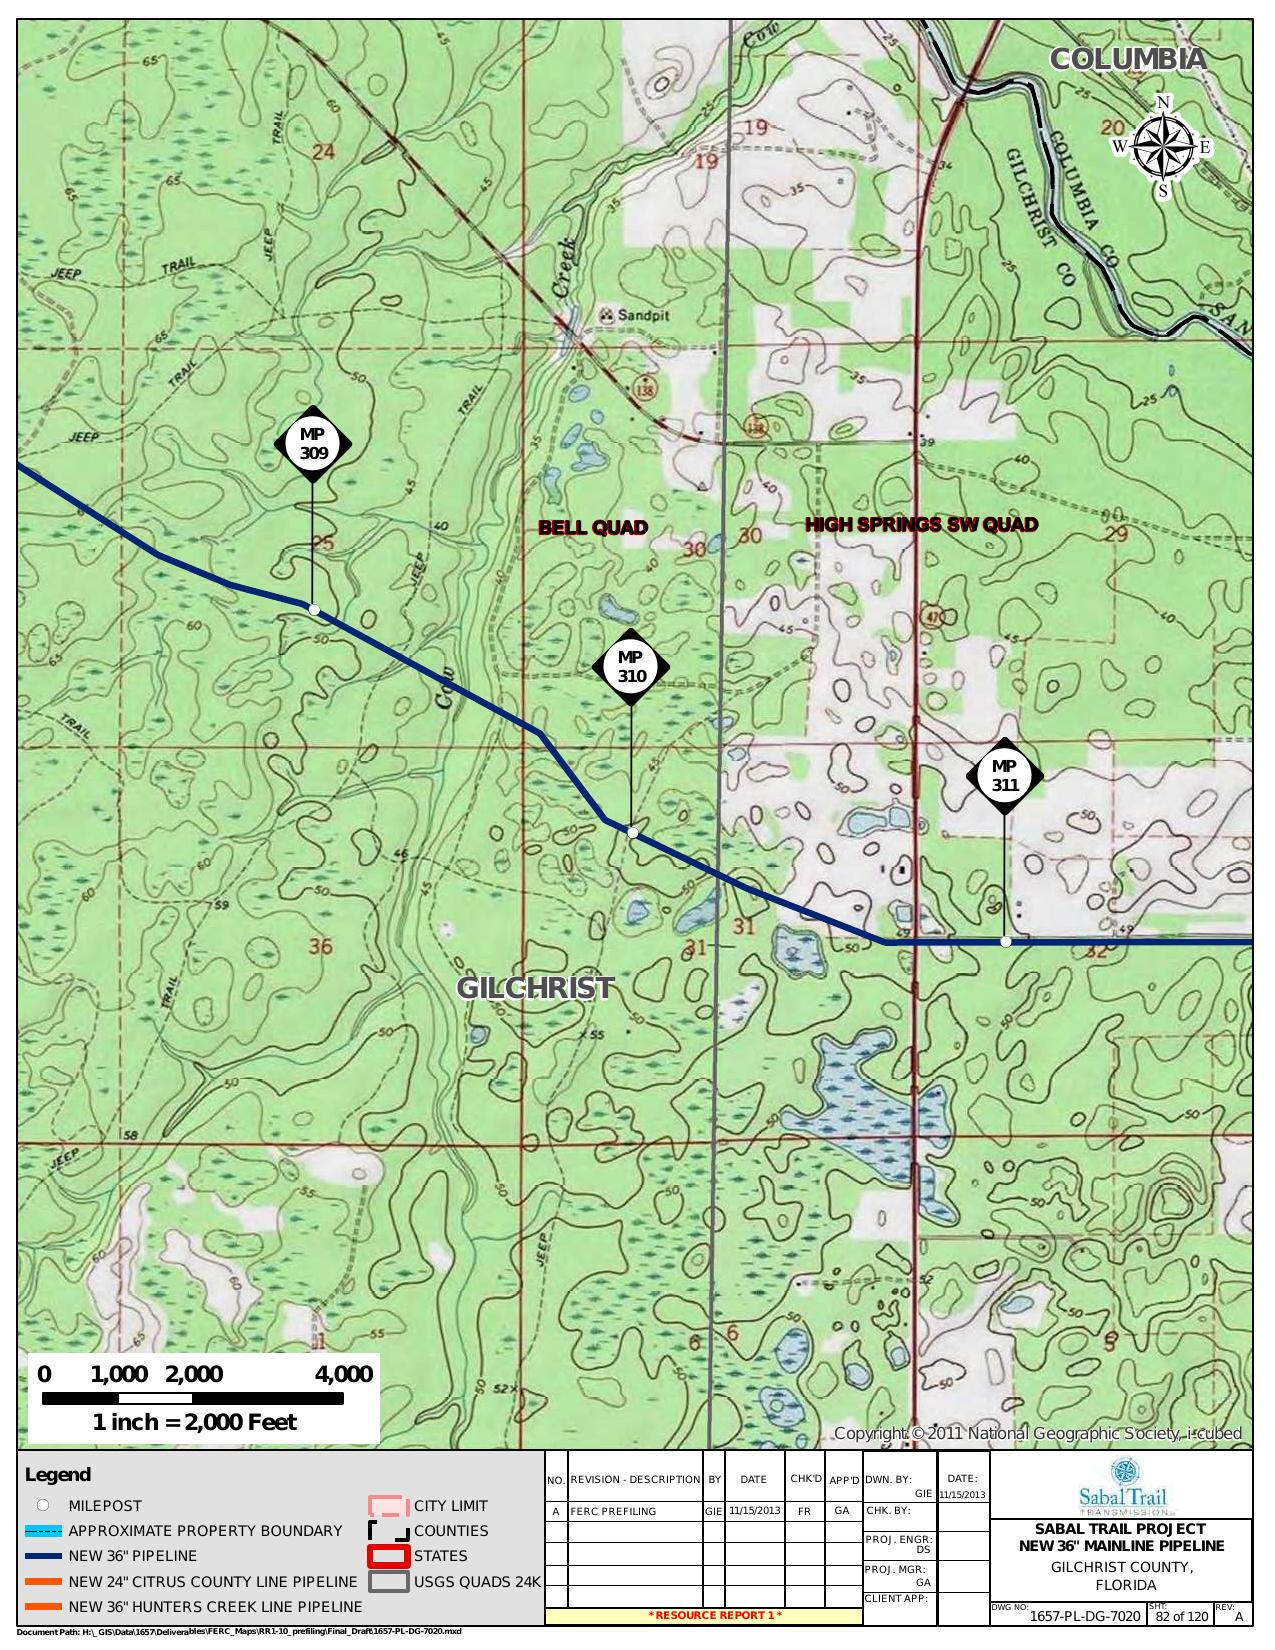 Cow Creek, Gilchrist County, Florida, in General Project Description, by SpectraBusters, for FERC Docket No. PF14-1-000, 15 November 2013, converted by SpectraBusters